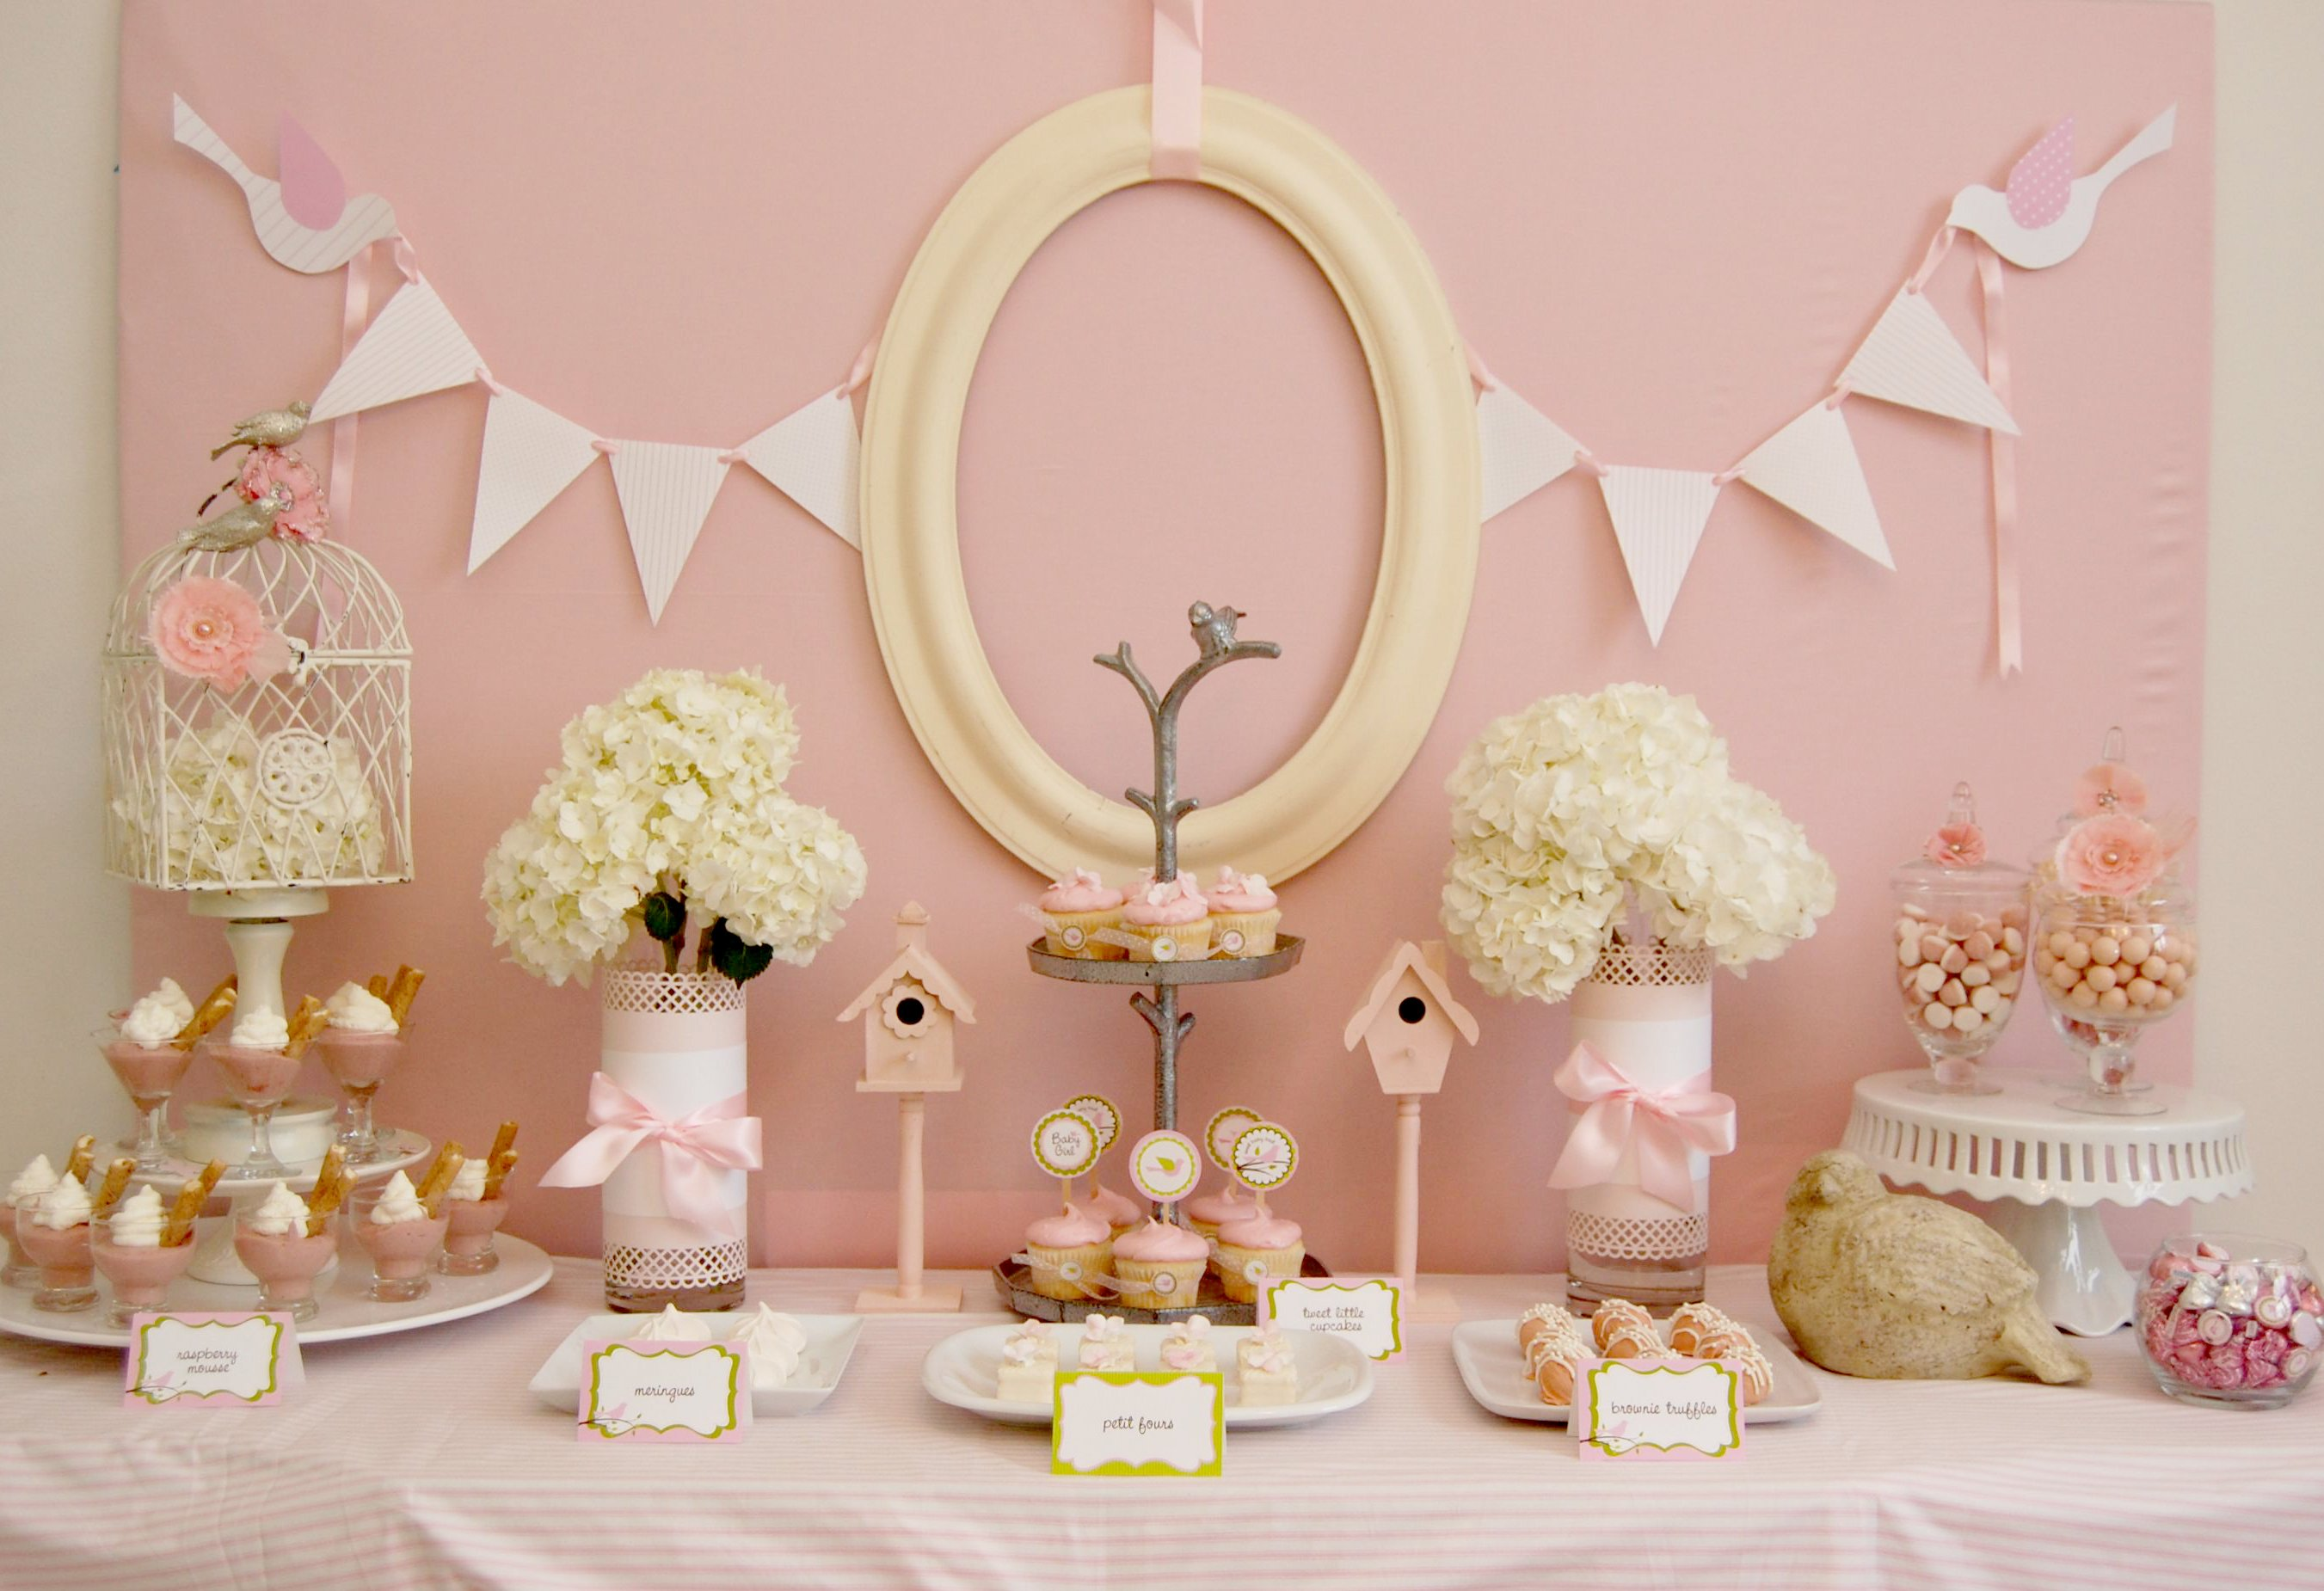 Cute baby shower table ideas photograph baby shower food i for Baby decoration ideas